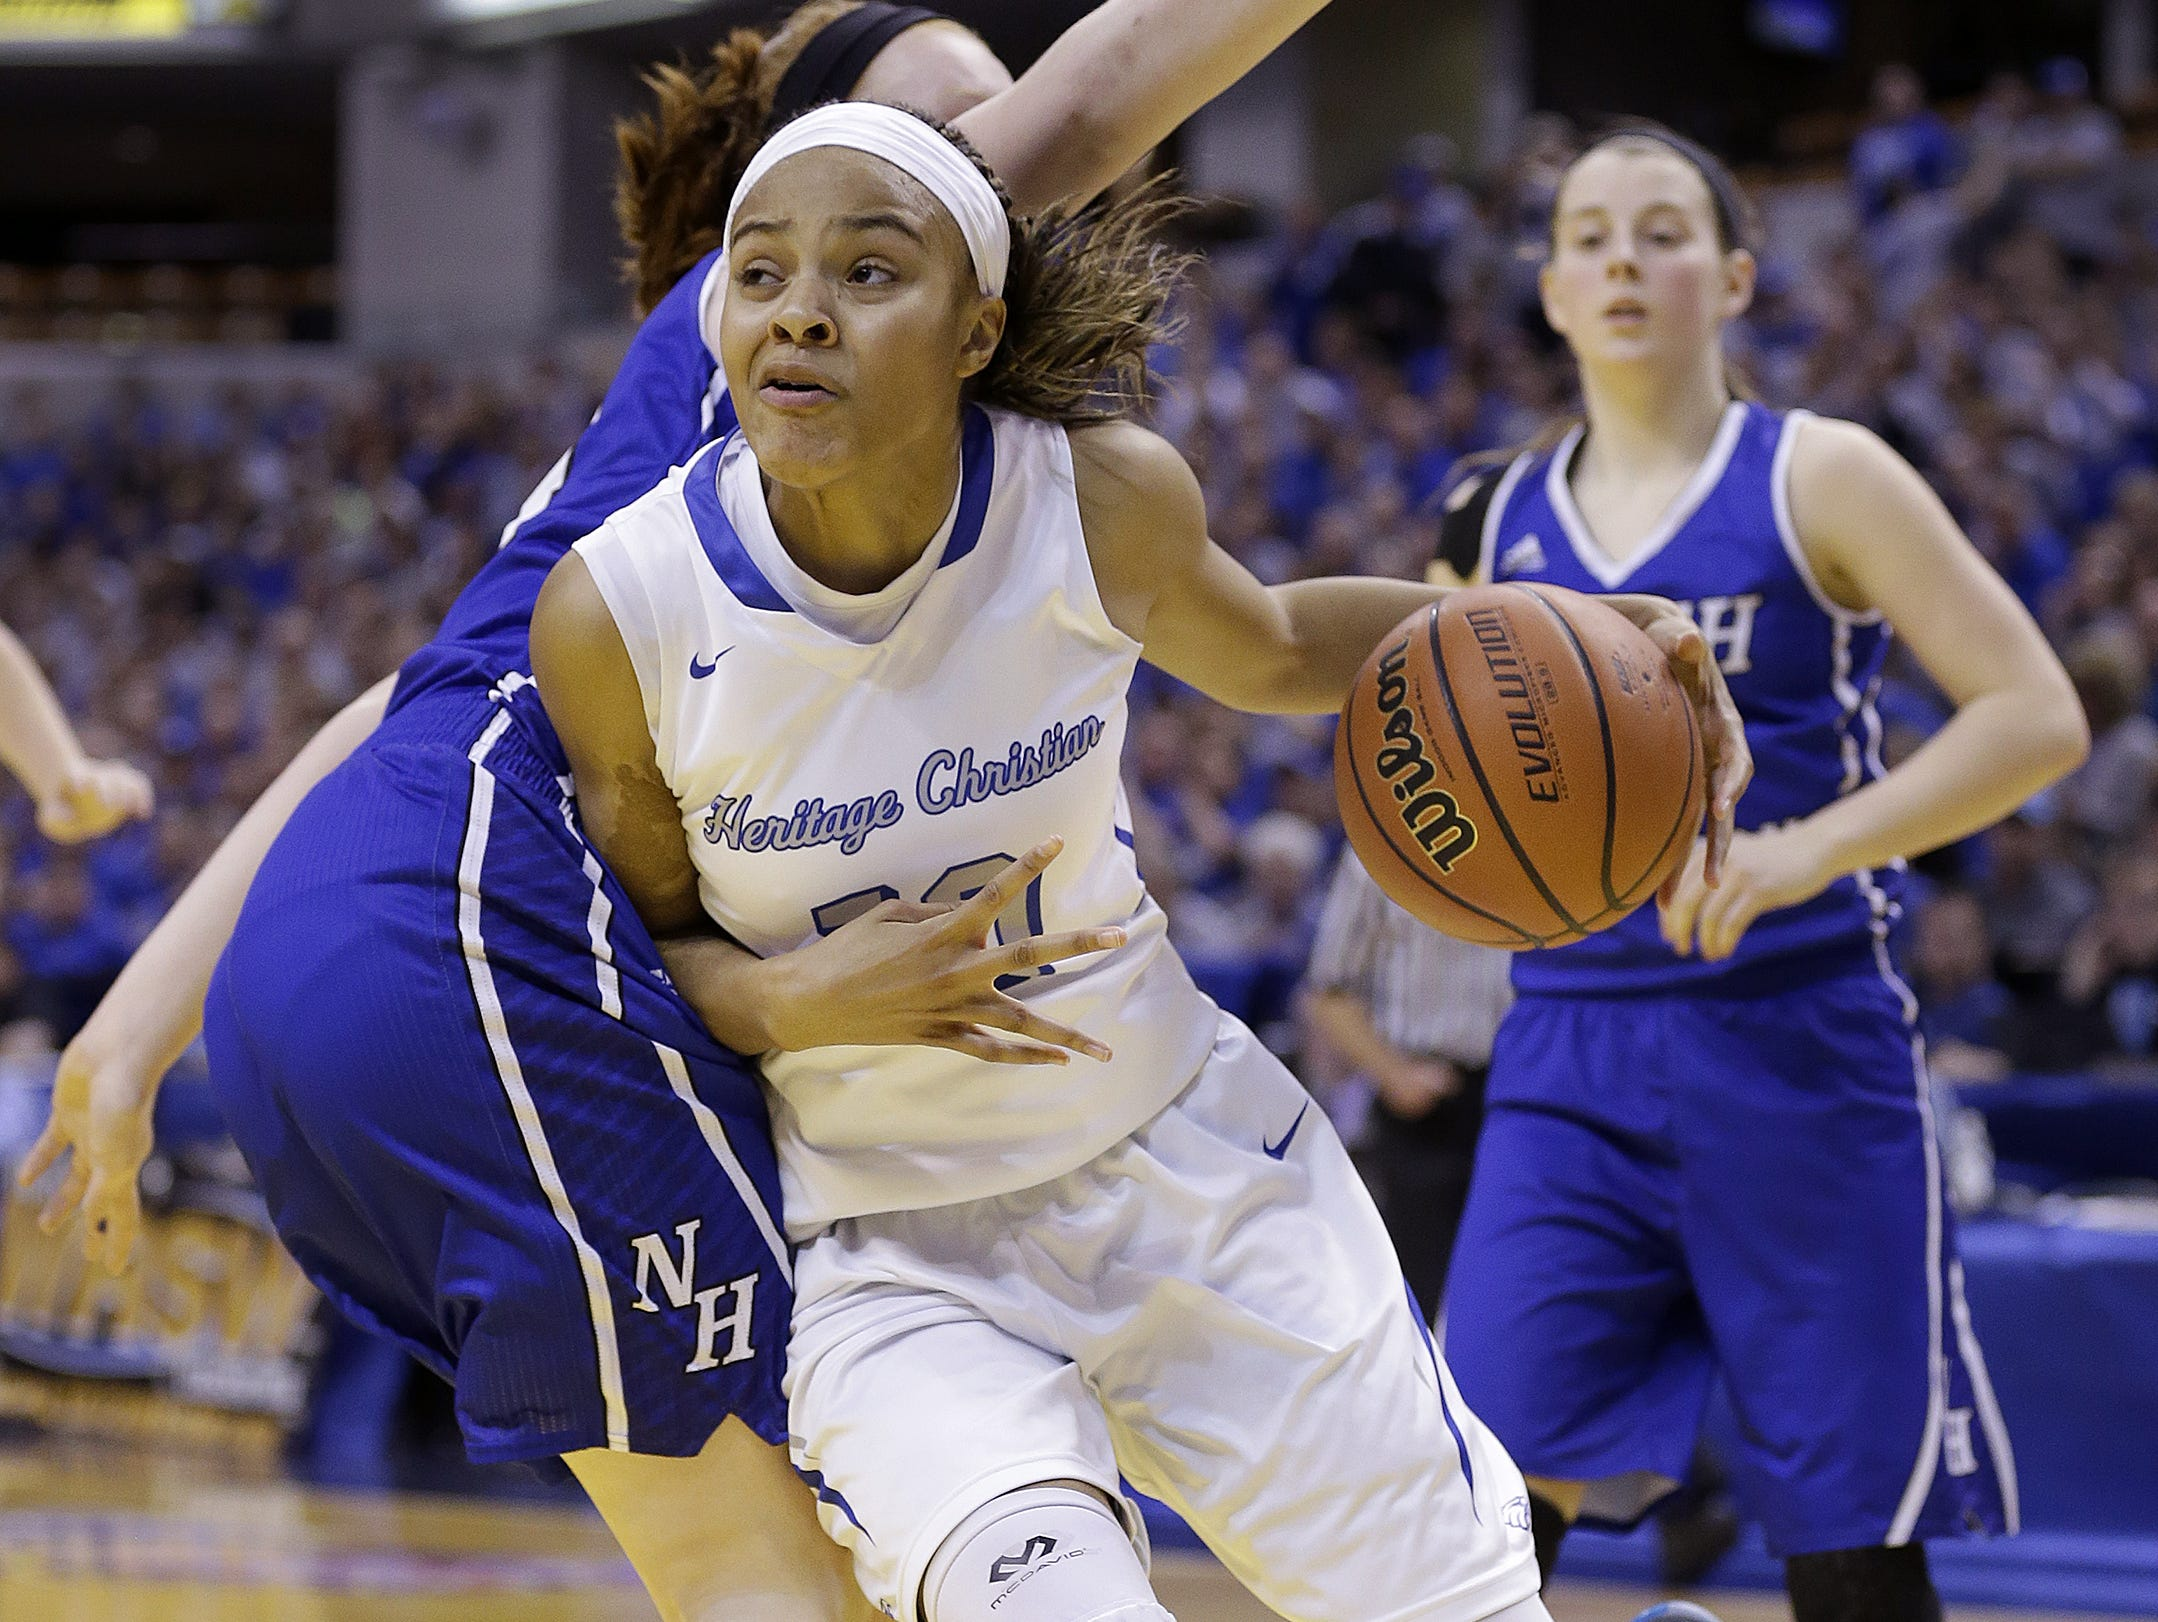 Heritage Christian's Katlyn Gilbert helped the Eagles to a Class 3A state title last season.